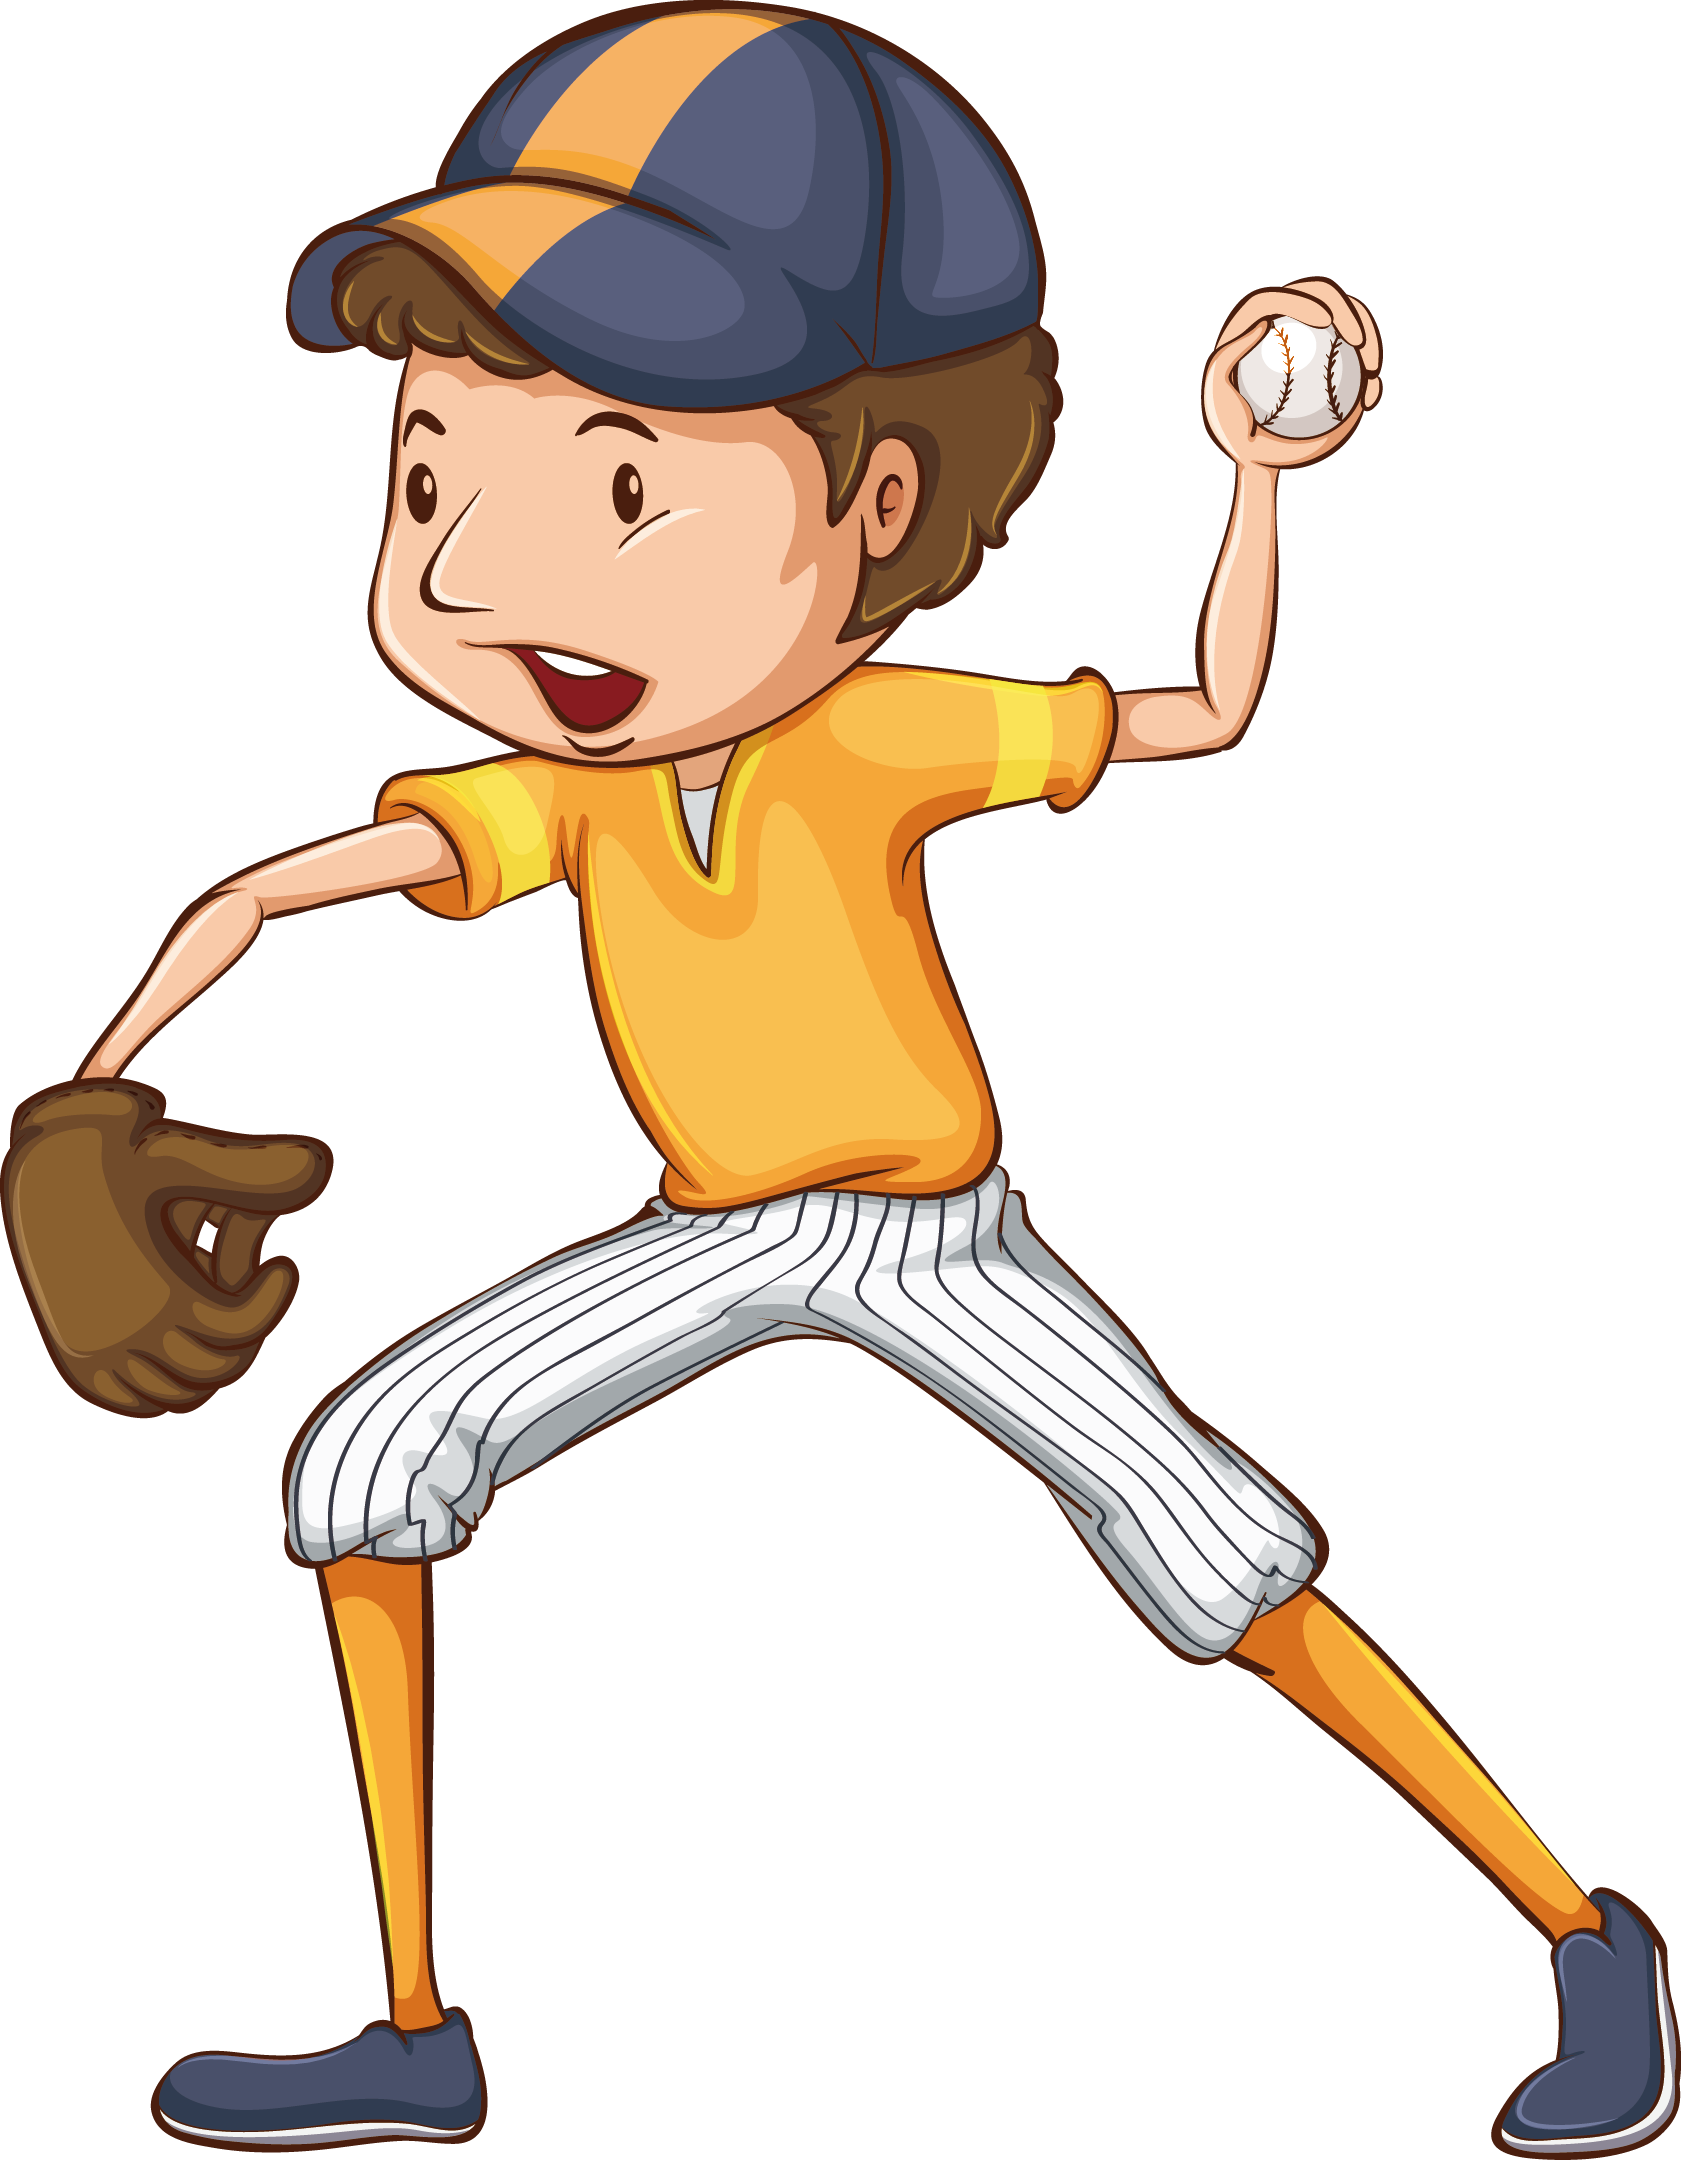 Kid baseball pitcher clipart graphic black and white stock Baseball Drawing Player Illustration - Youth Baseball Open 1681*2160 ... graphic black and white stock